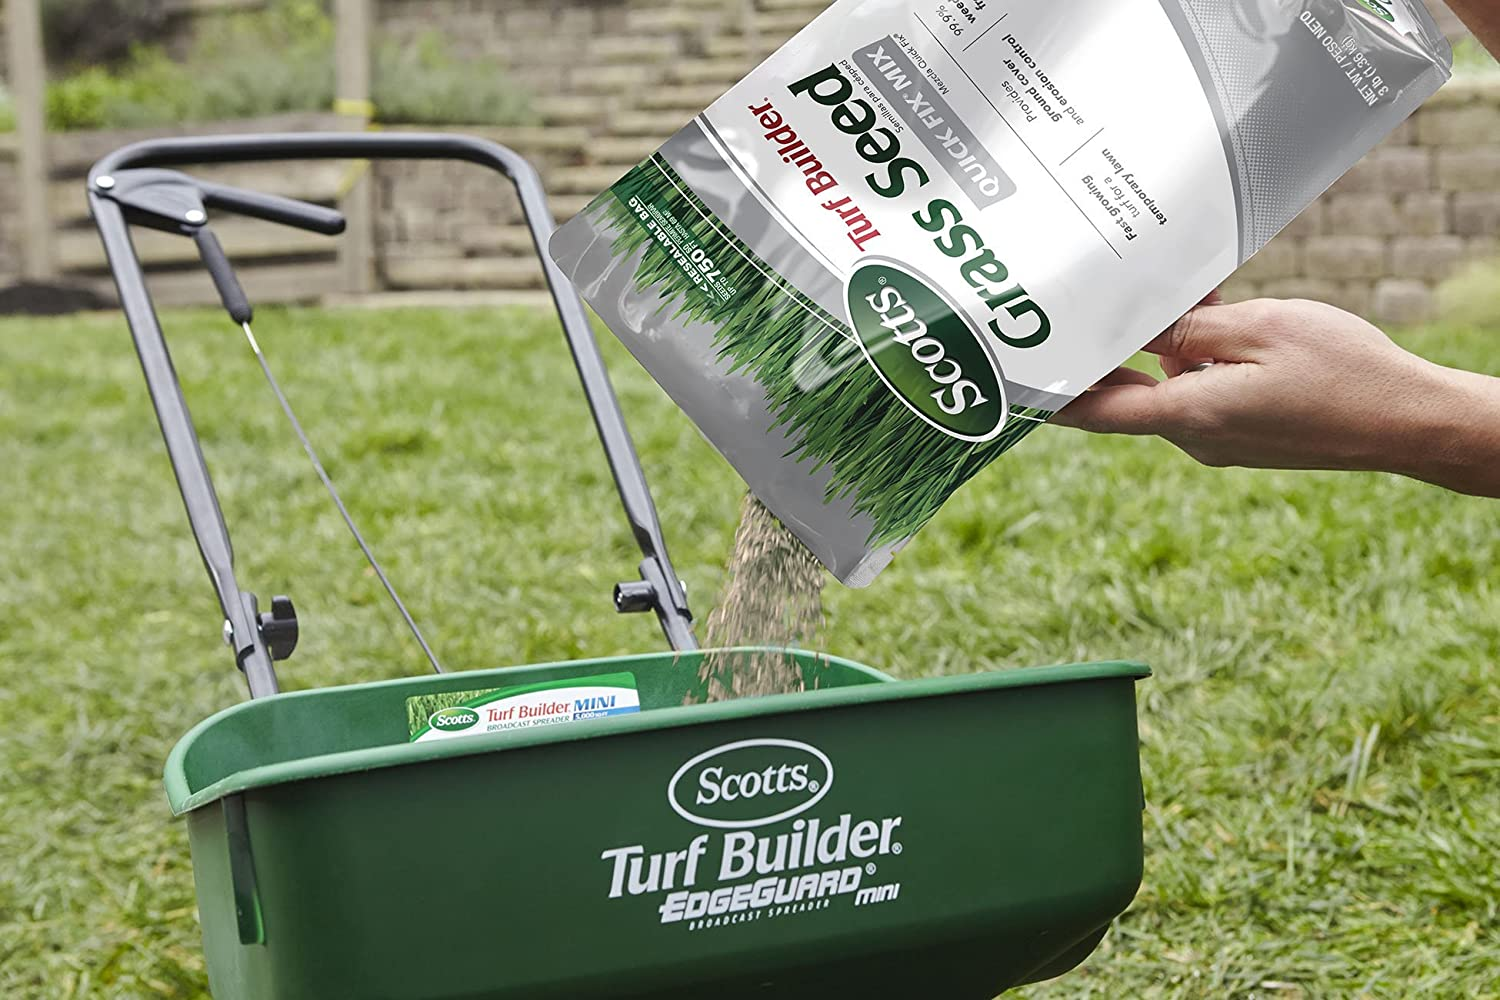 Scotts Turf Builder Quick Pounds Image 2